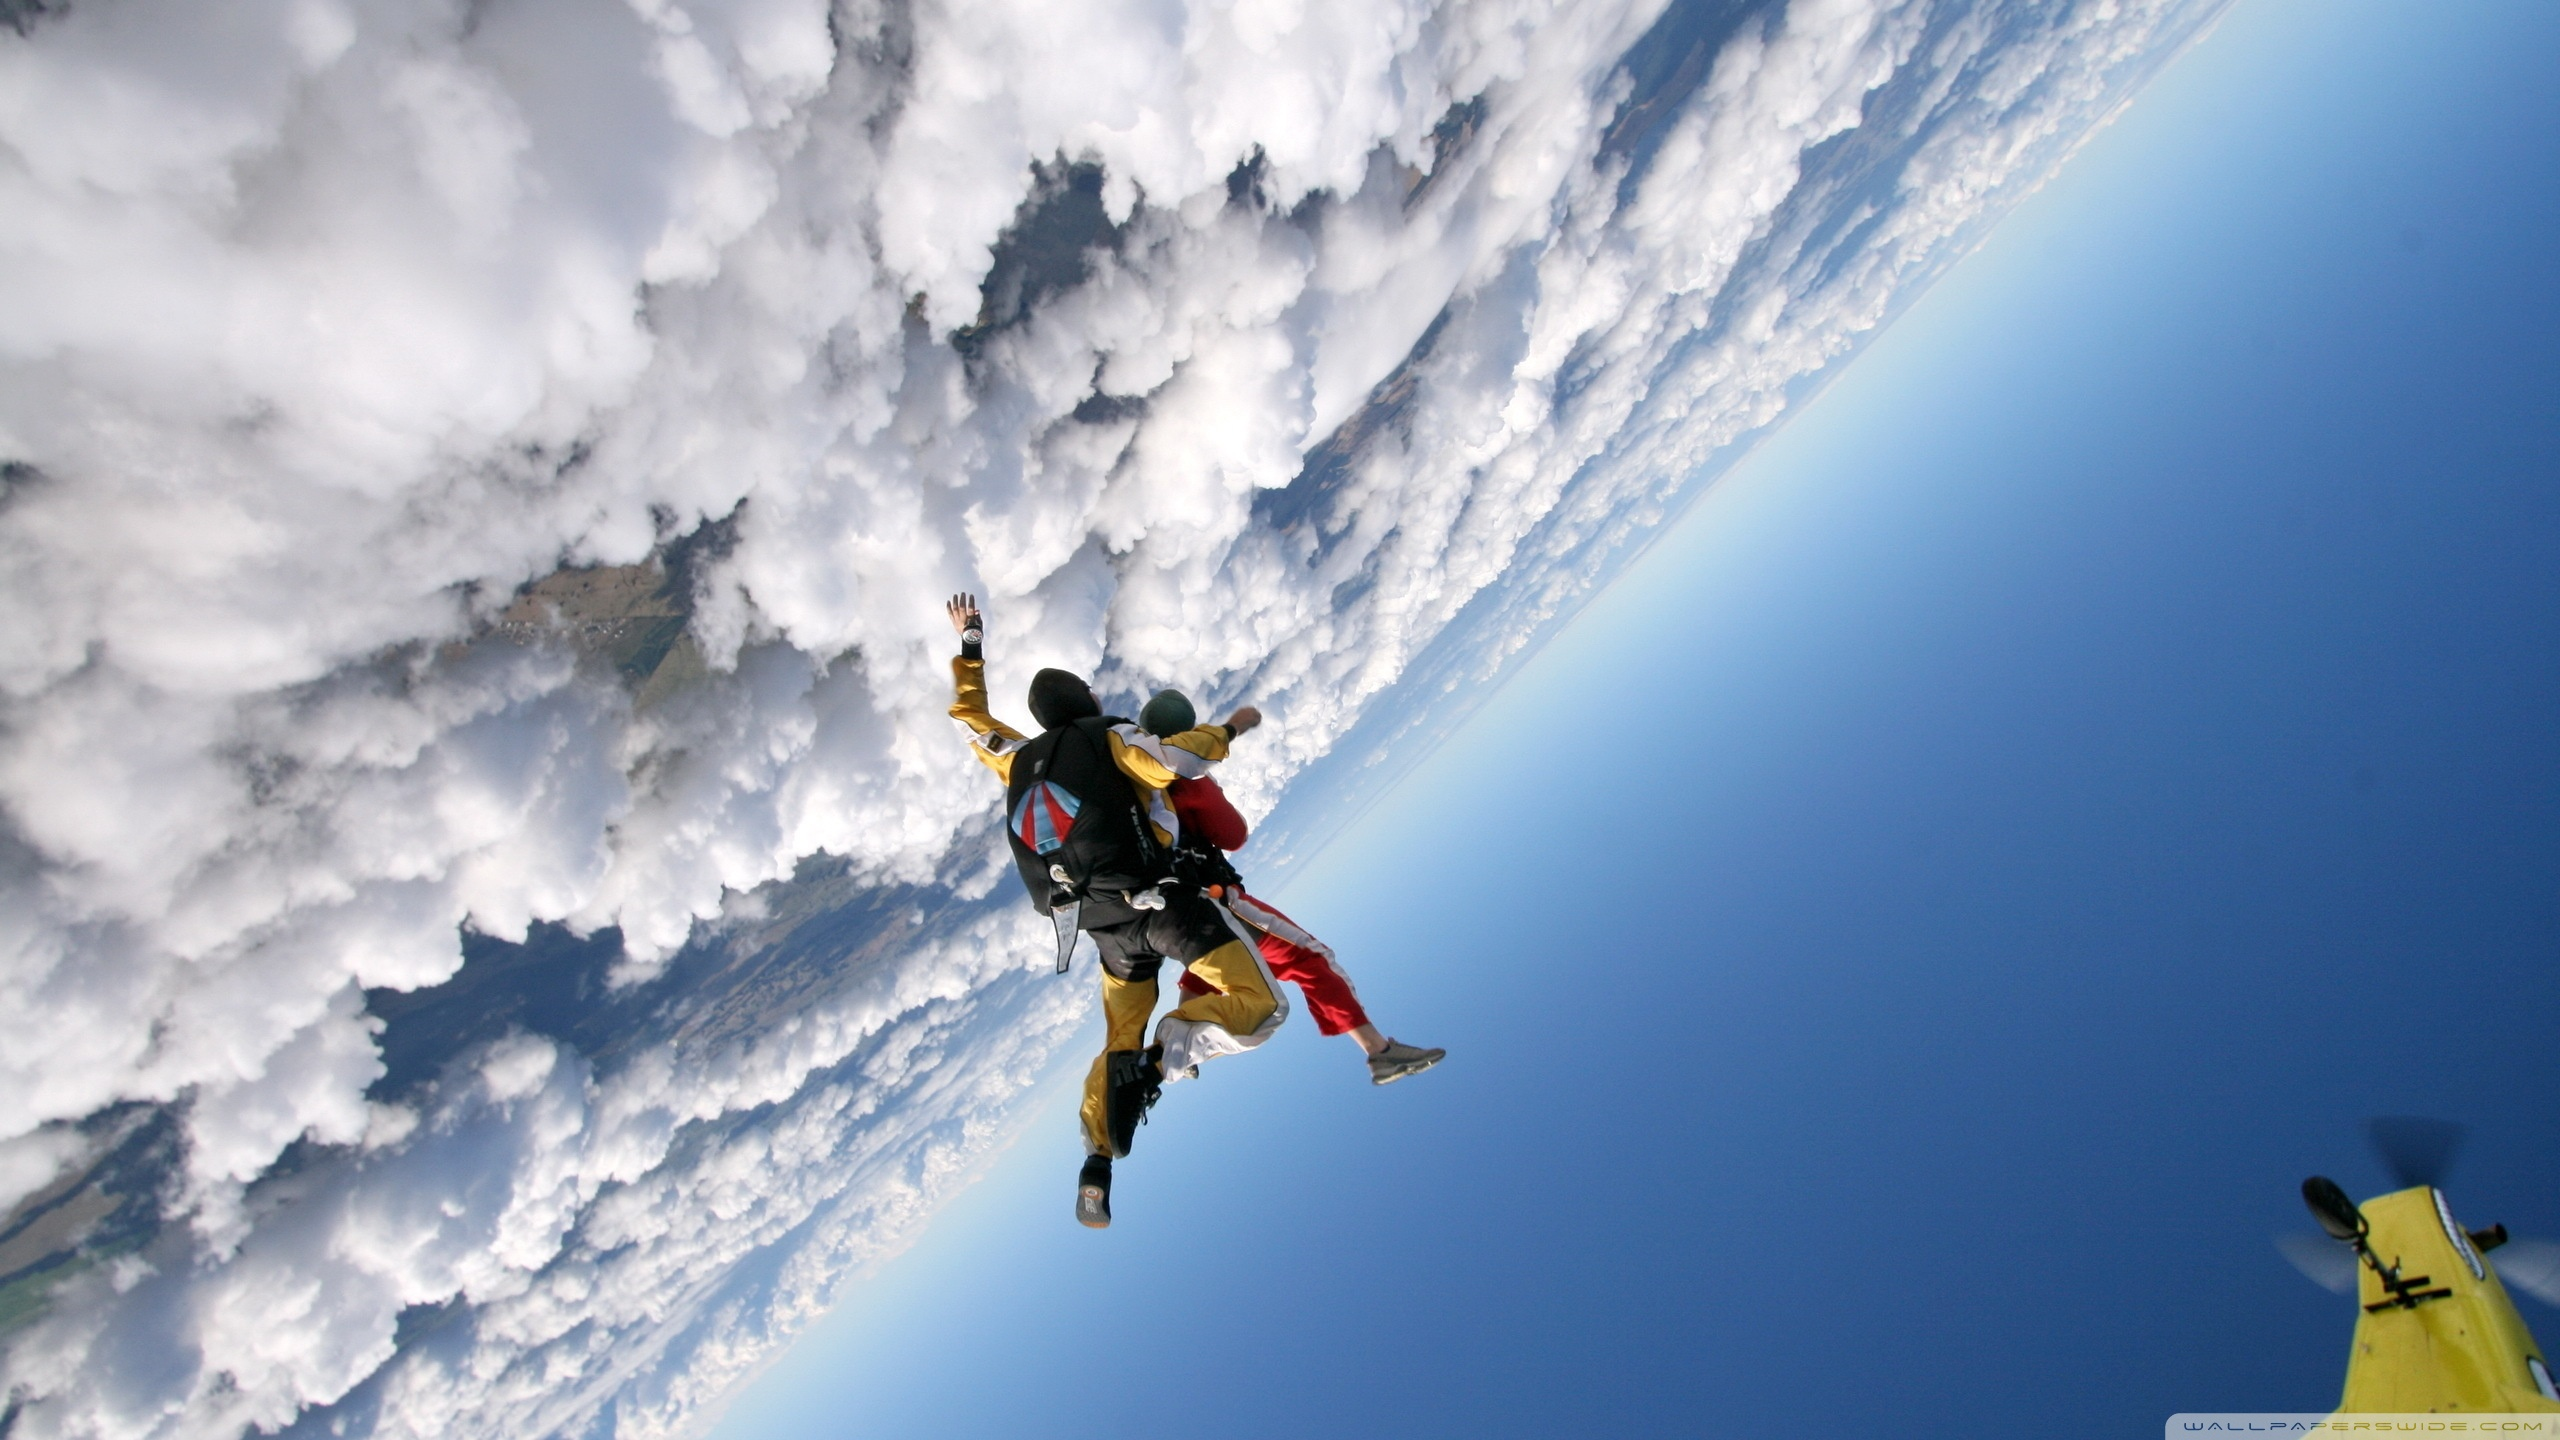 2560x1440 - Skydiving Wallpapers 10